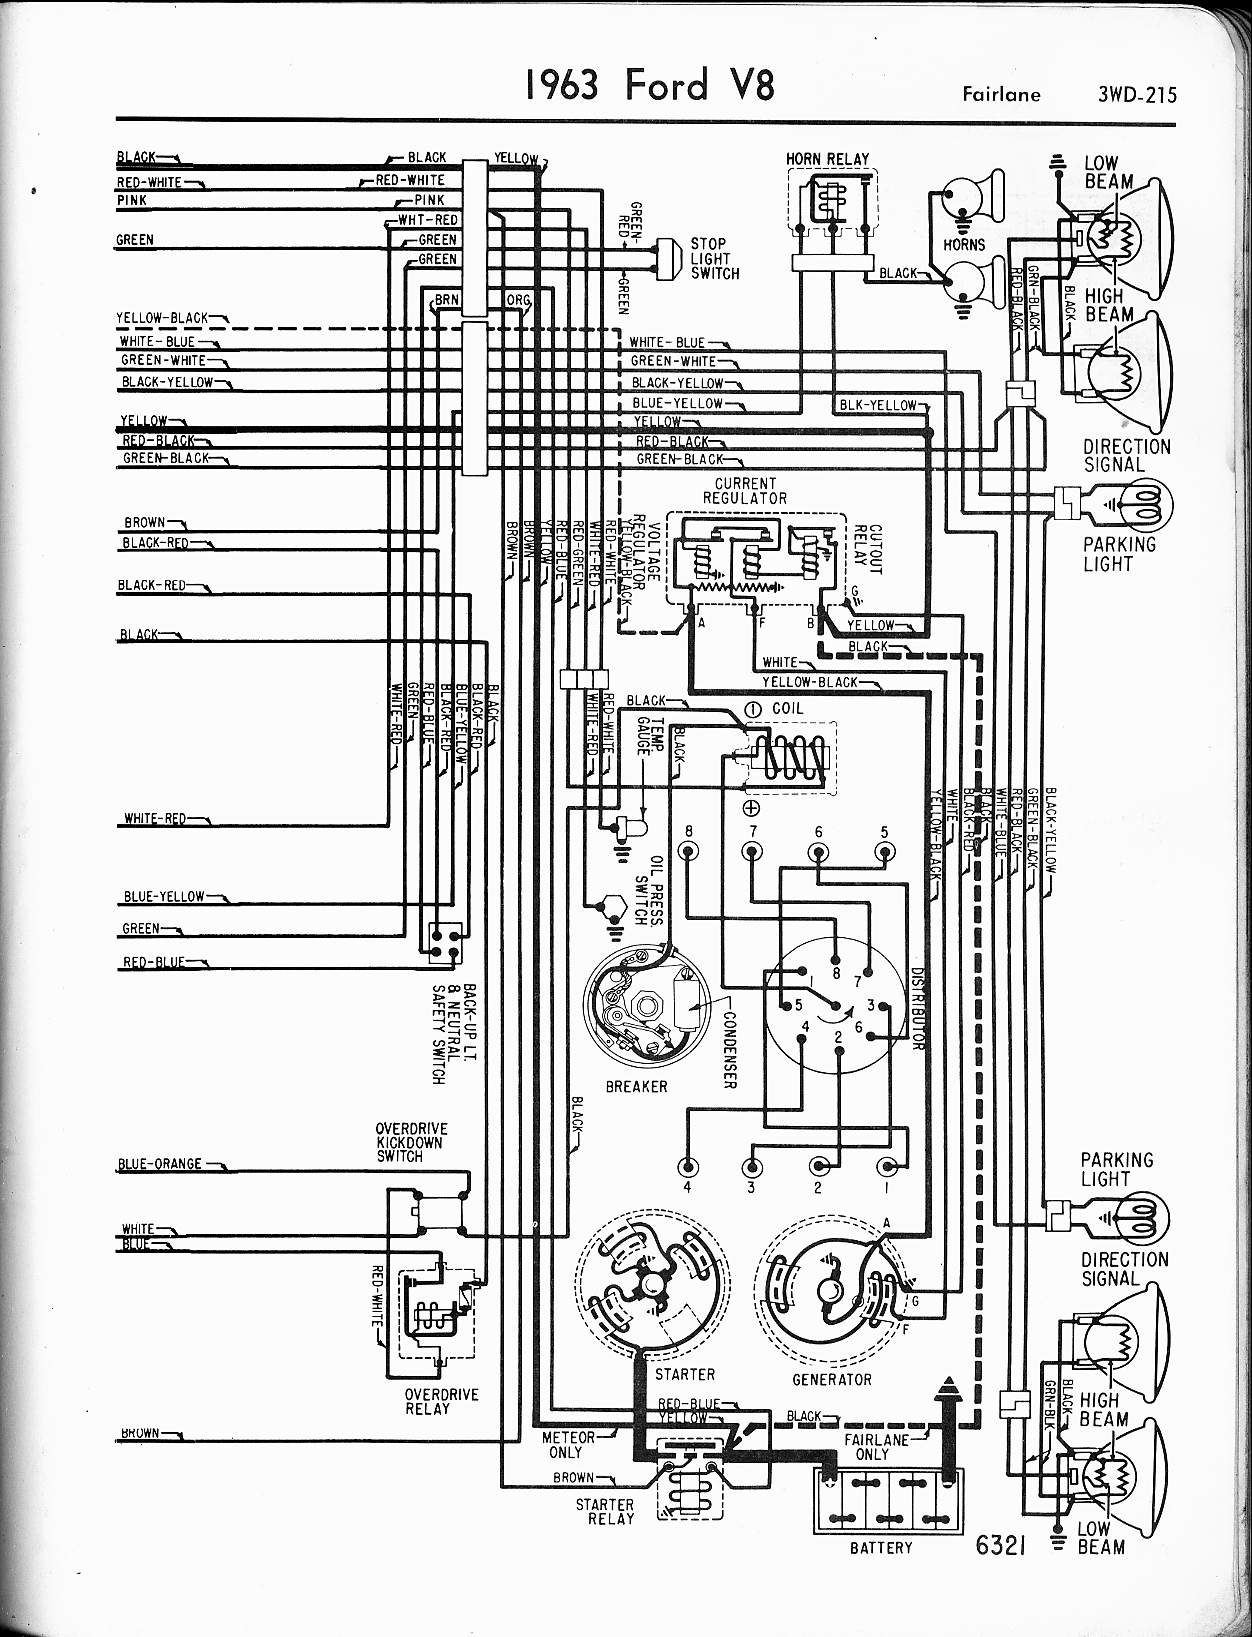 1958 ford car wiring diagram wiring diagram 1957 thunderbird wiring diagram 1958 ford wiring diagram wiring diagram